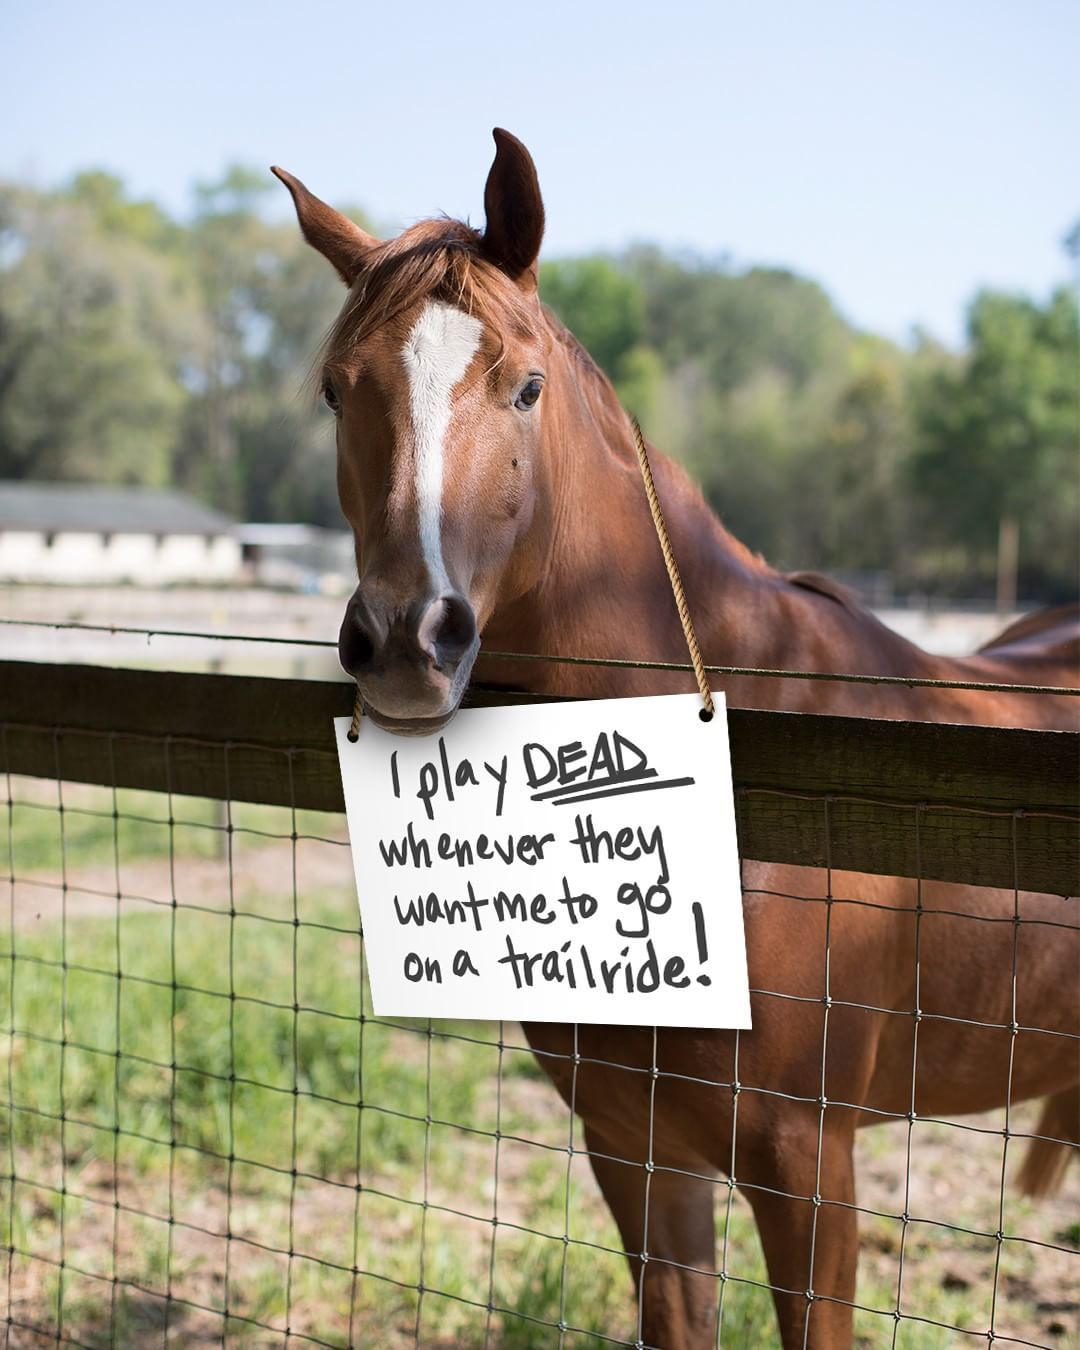 What does your horse do when they're naughty? #HorseShaming... #HorsesbeingHorses #PurinaFed #FeedGreatness #PurinaHorseFeed